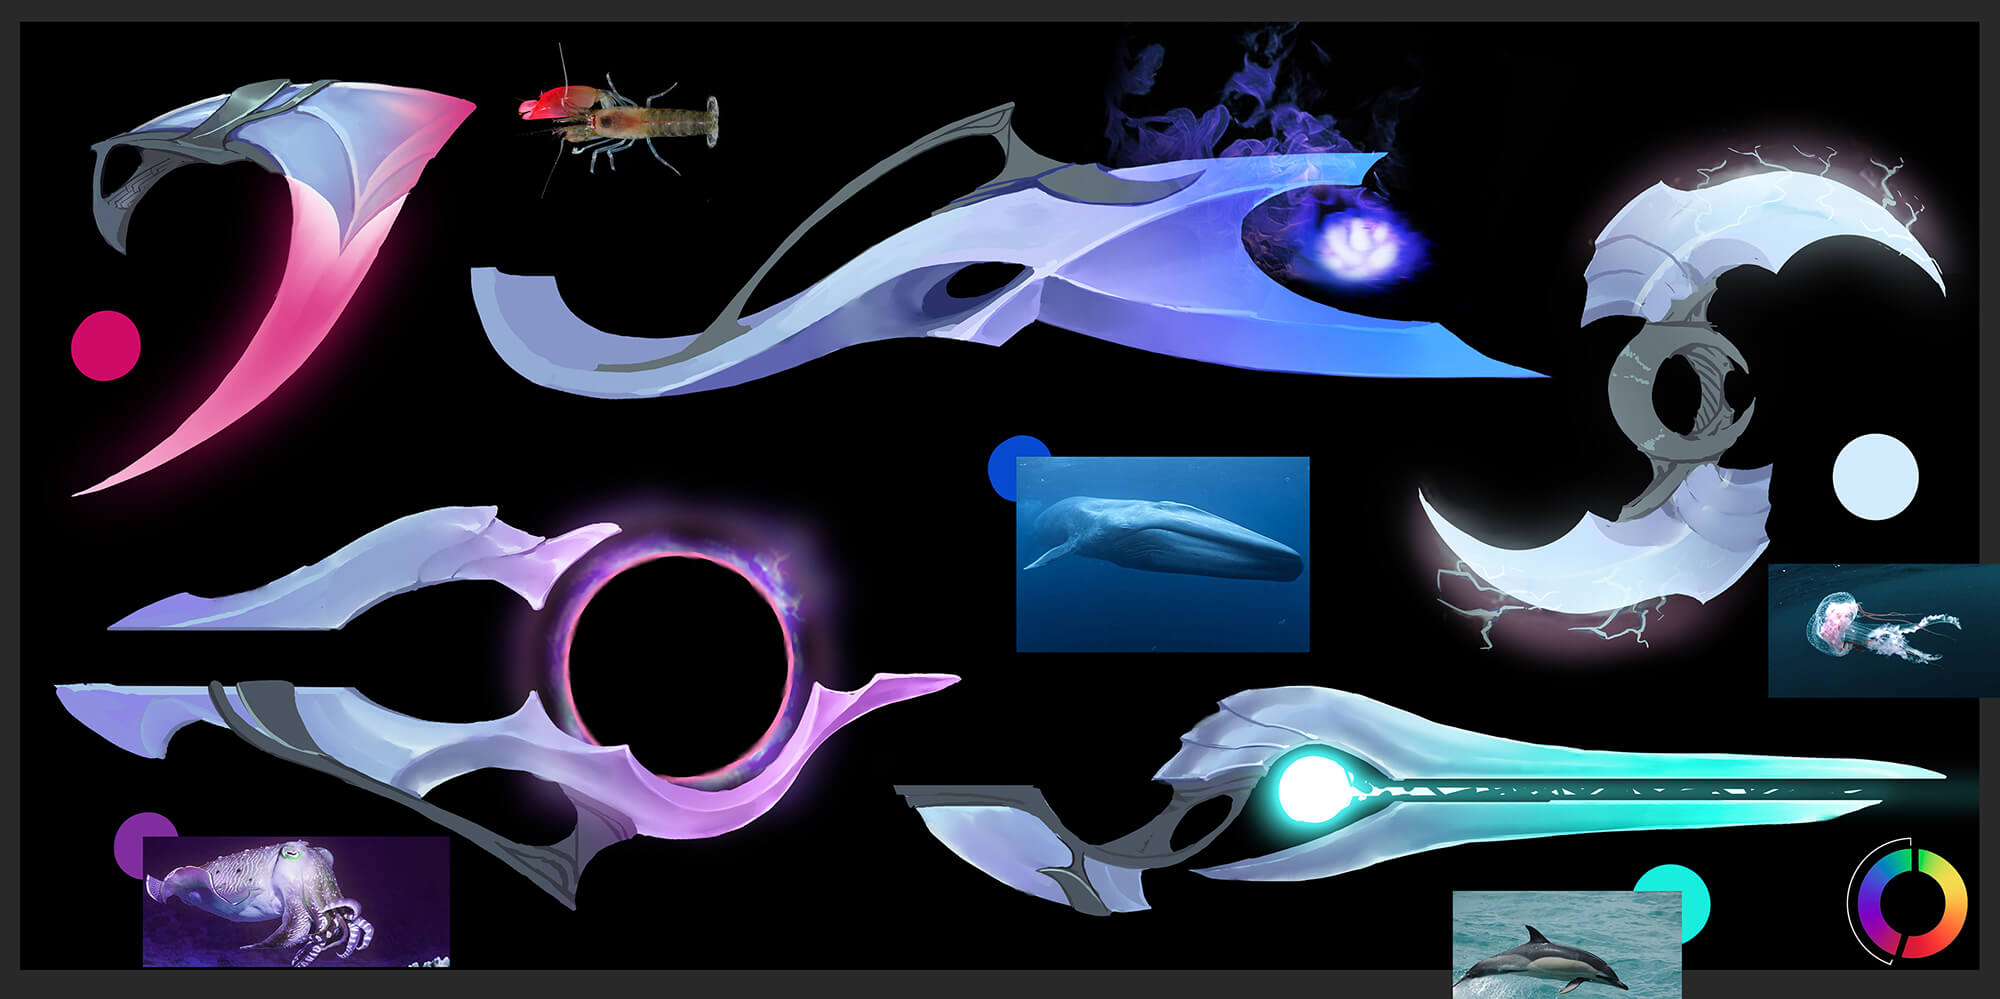 A few of Aphelios' weapon ideations